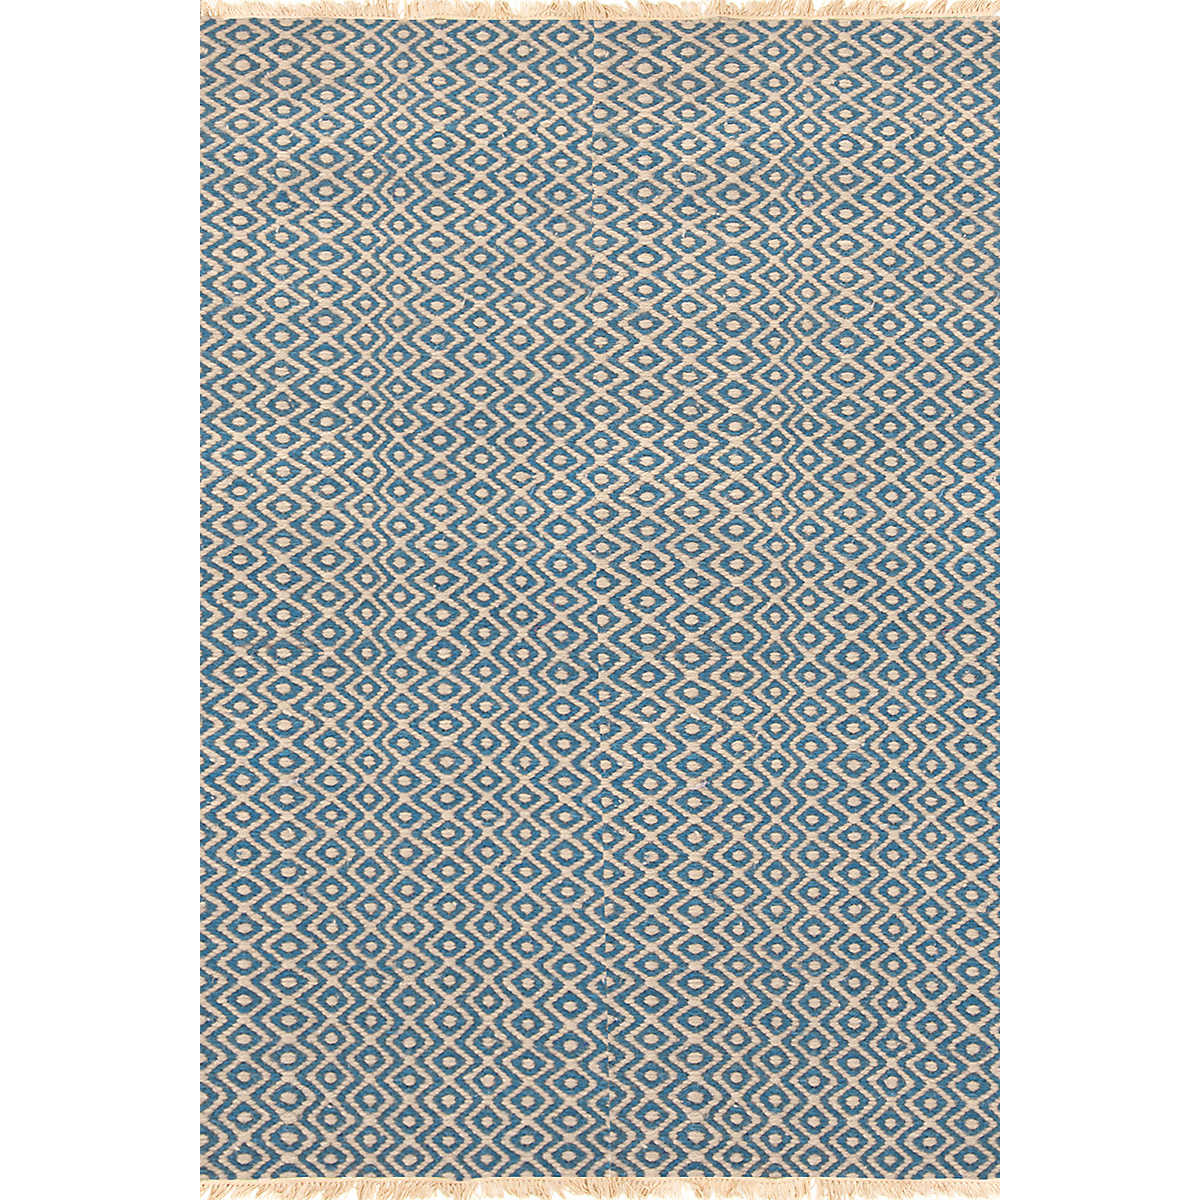 Mosi Indigo Indoor Outdoor Rug